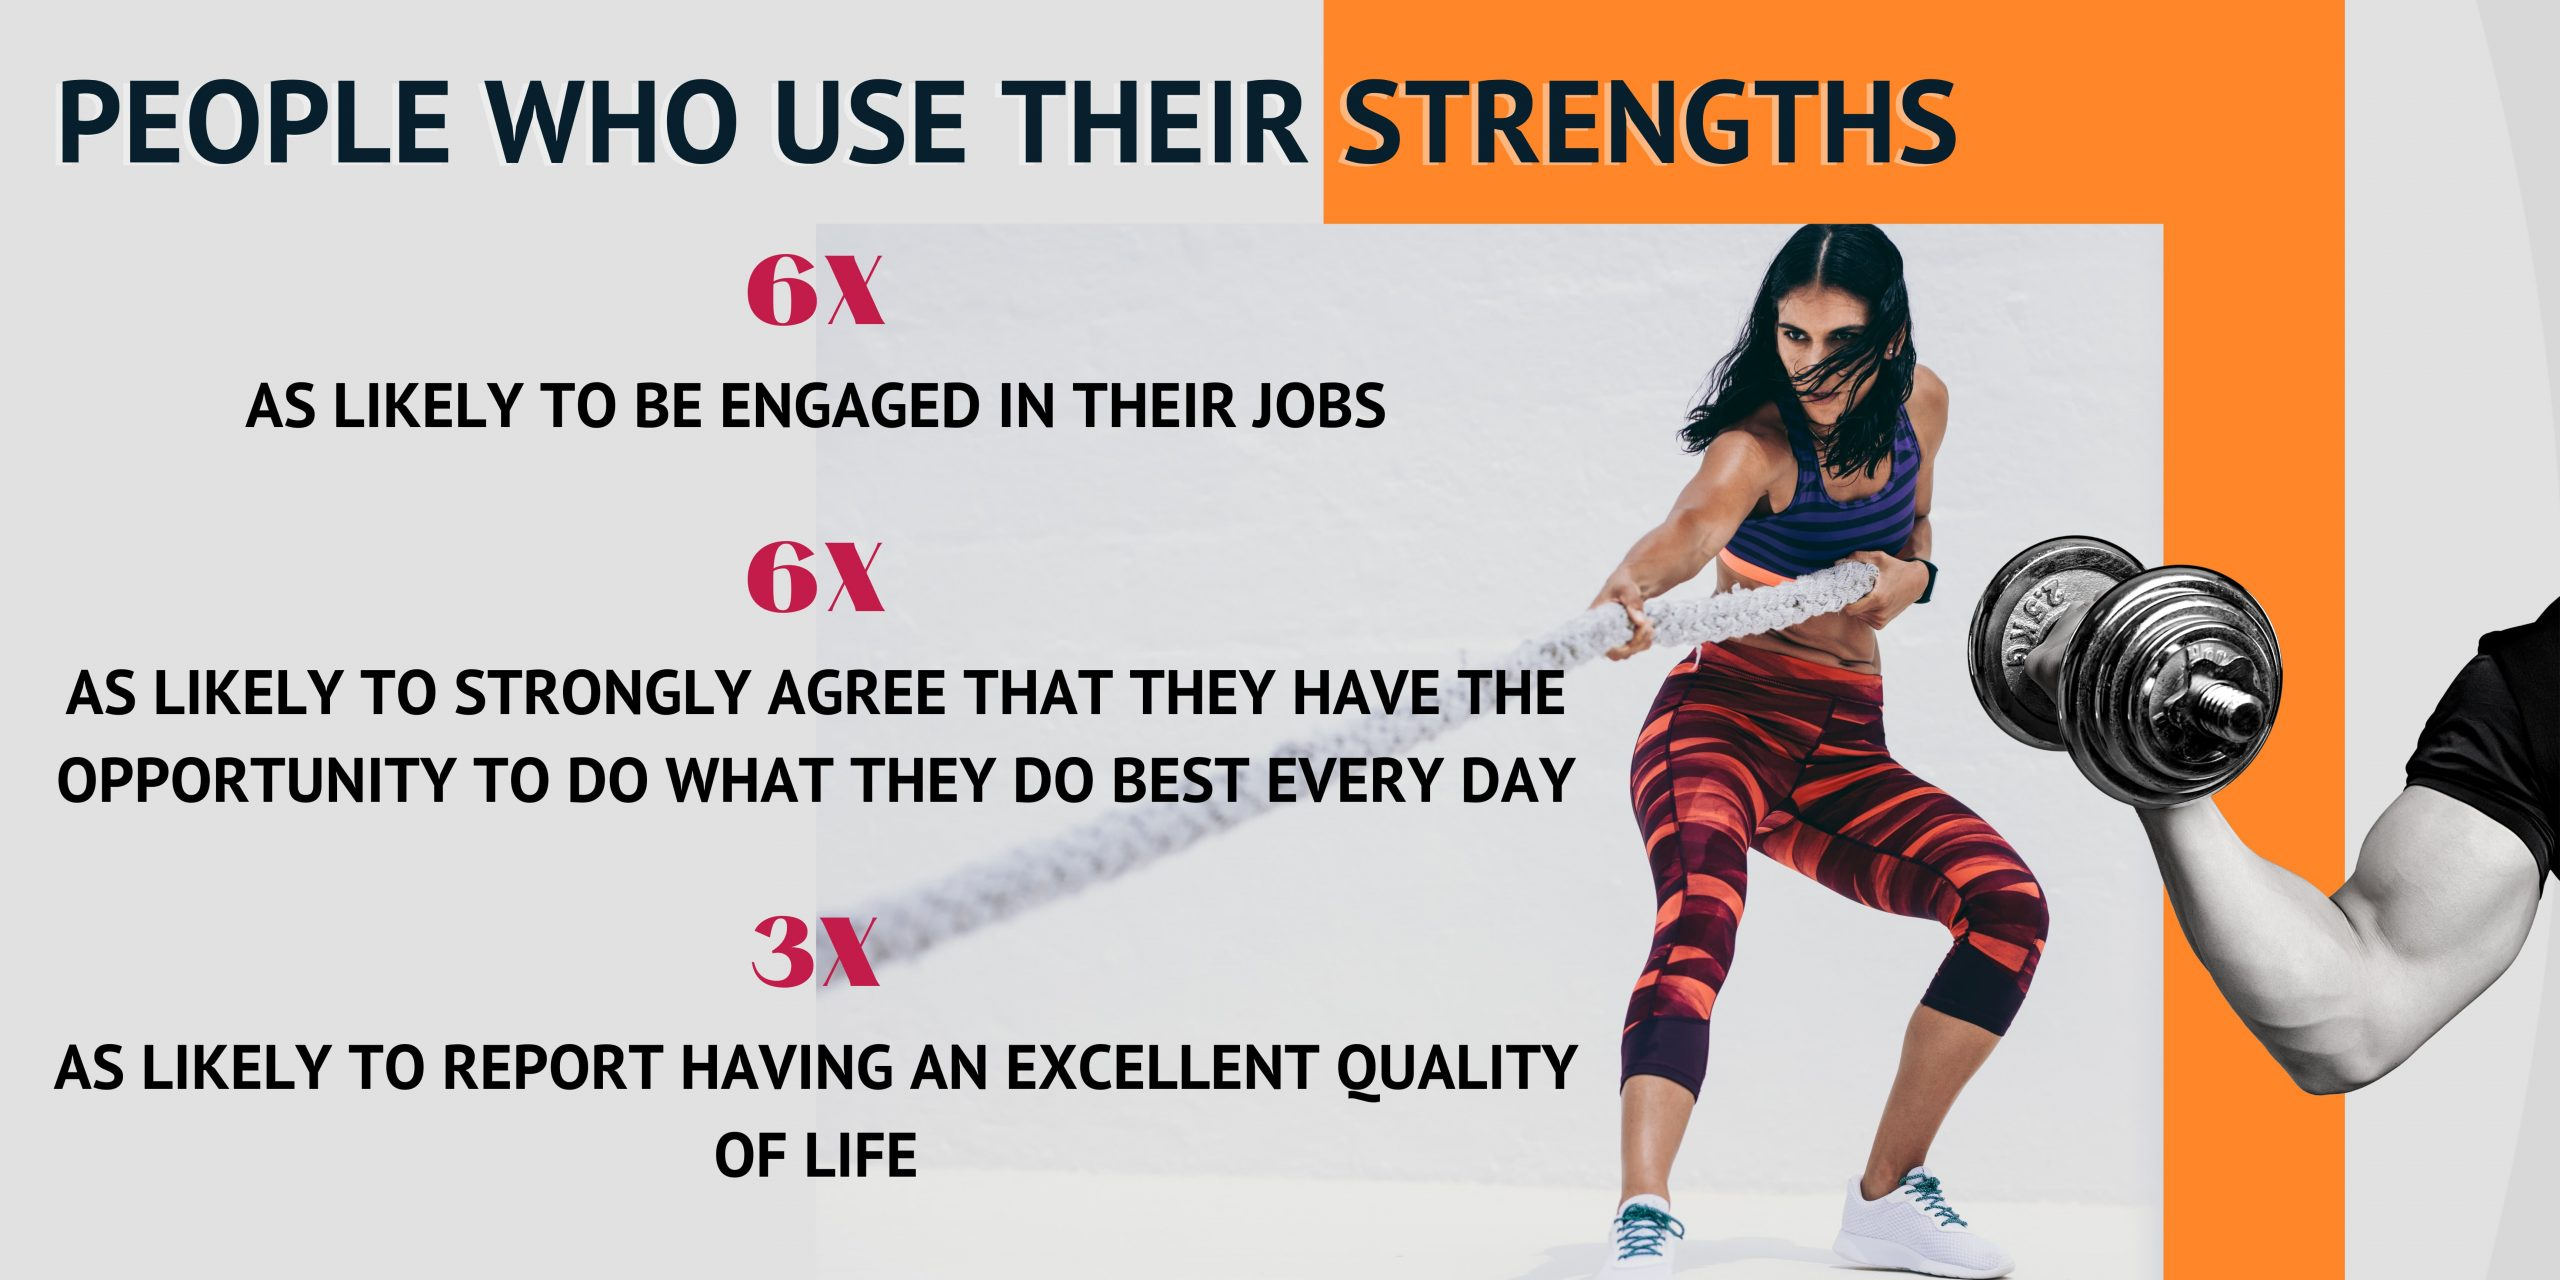 People who use their strengths perform better and are more engaged.